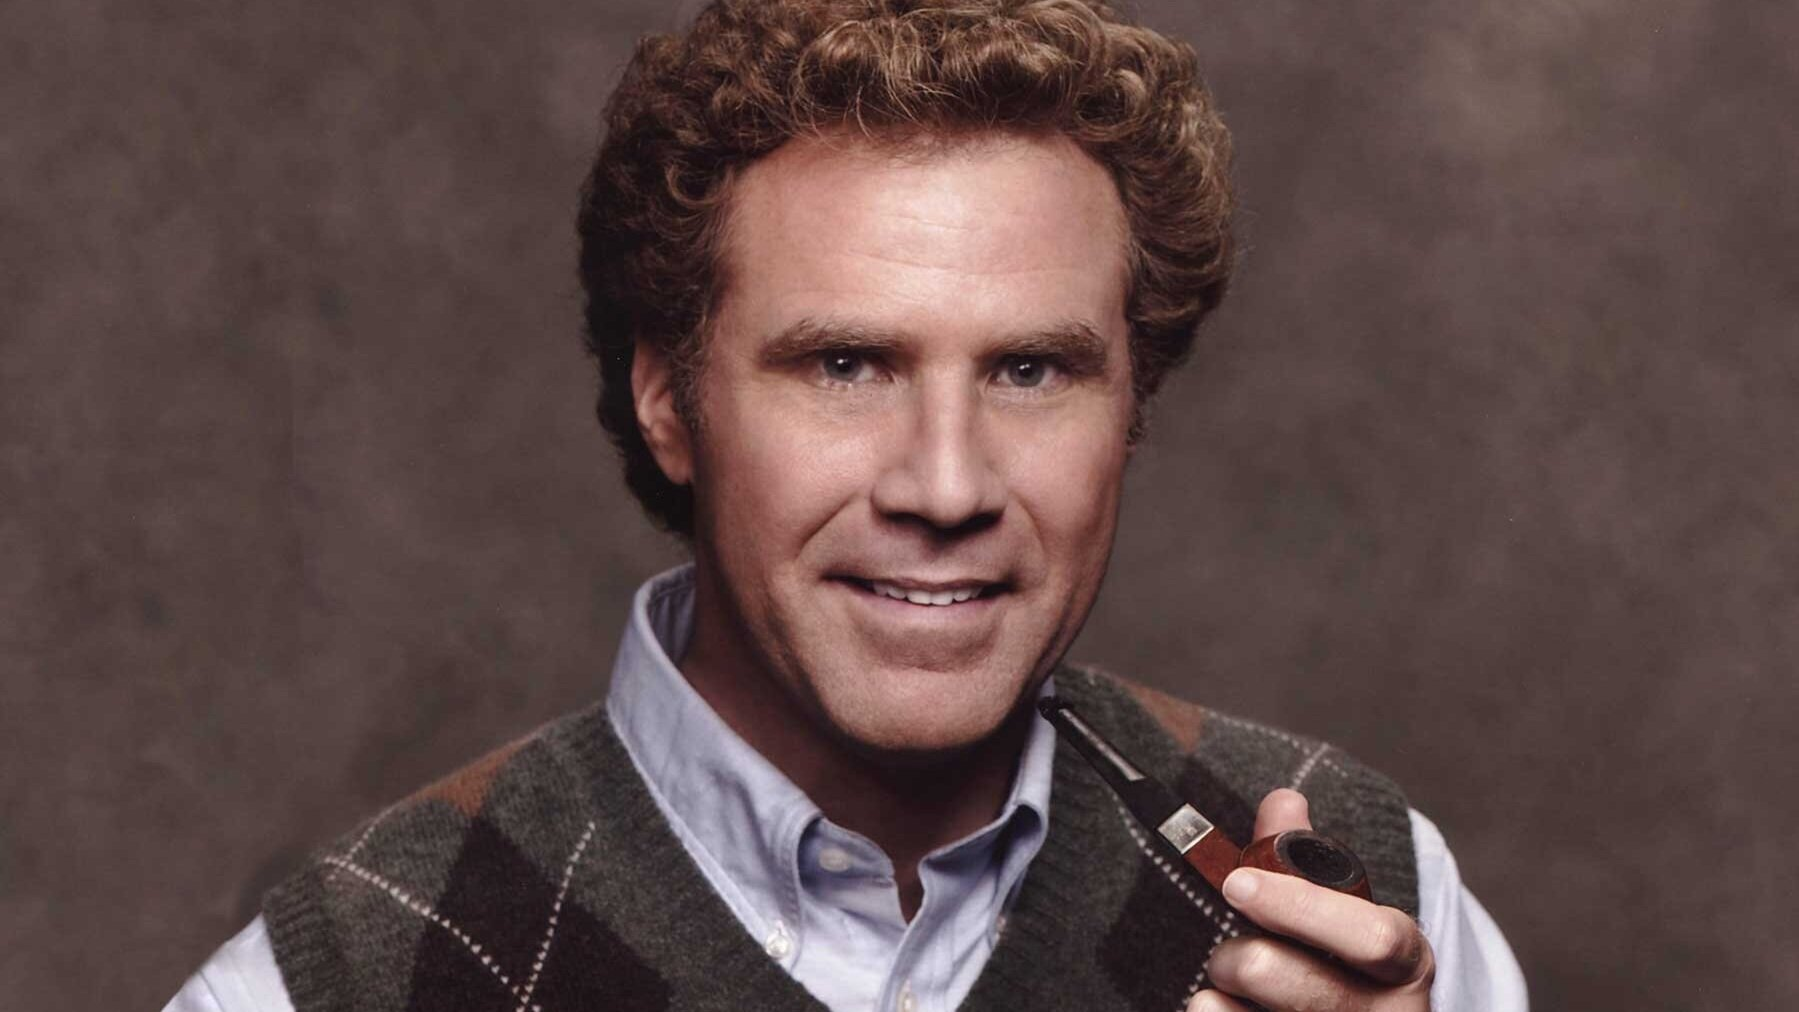 Will Ferrell Christmas Carol.Will Ferrell And Ryan Reynolds Team For A Musical